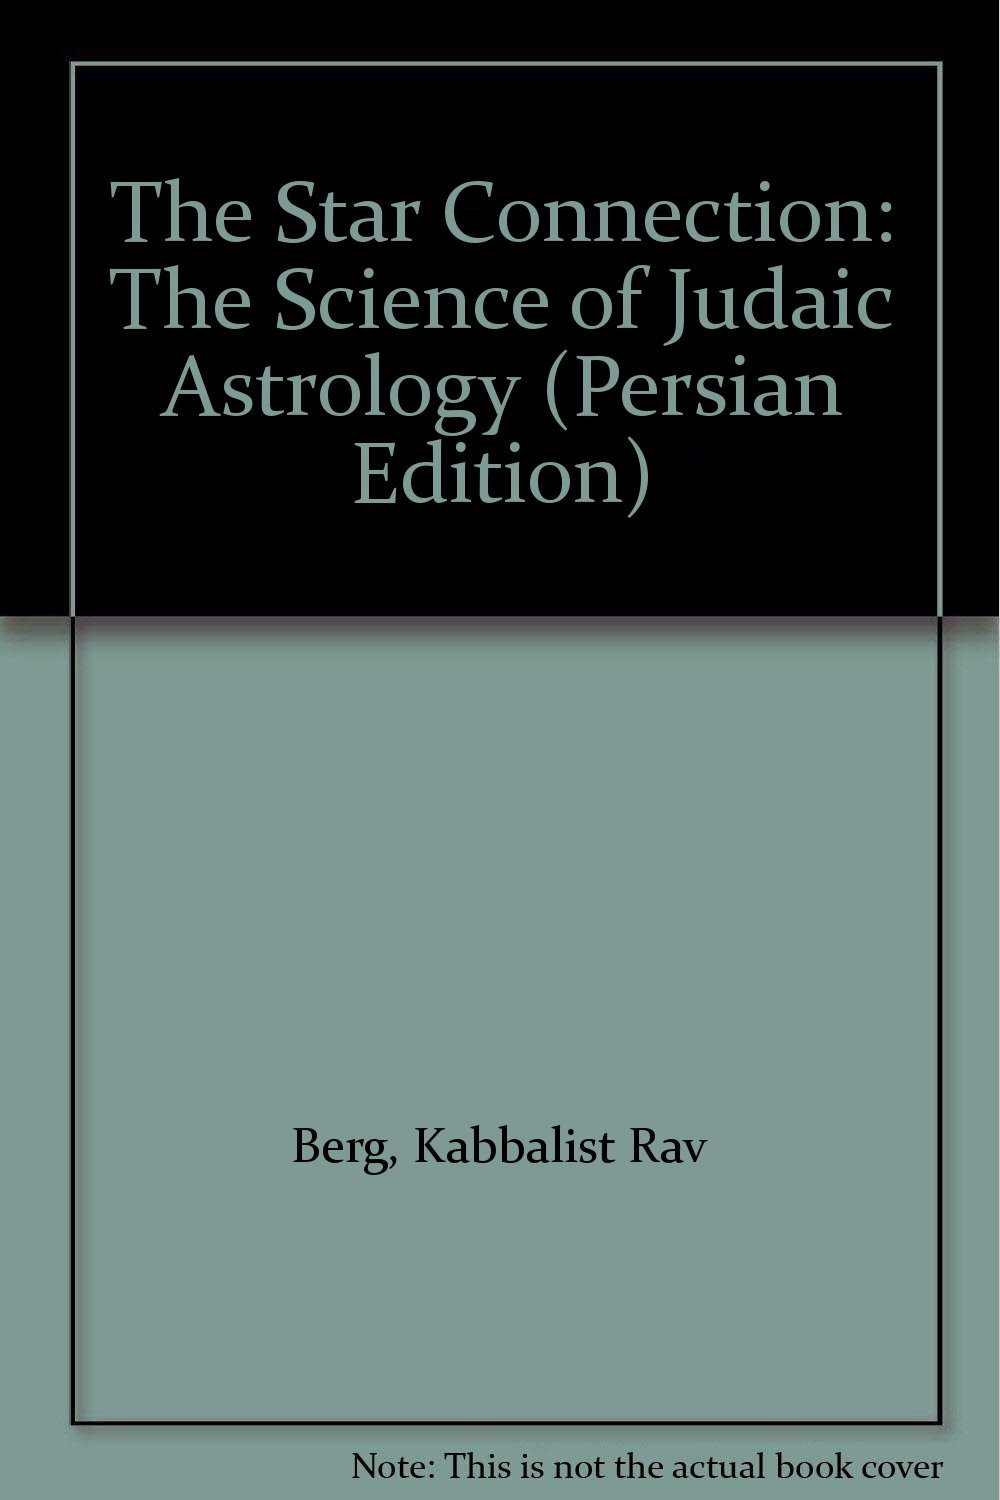 The Star Connection: The Science of Judaic Astrology: Amazon.in: Rav ...